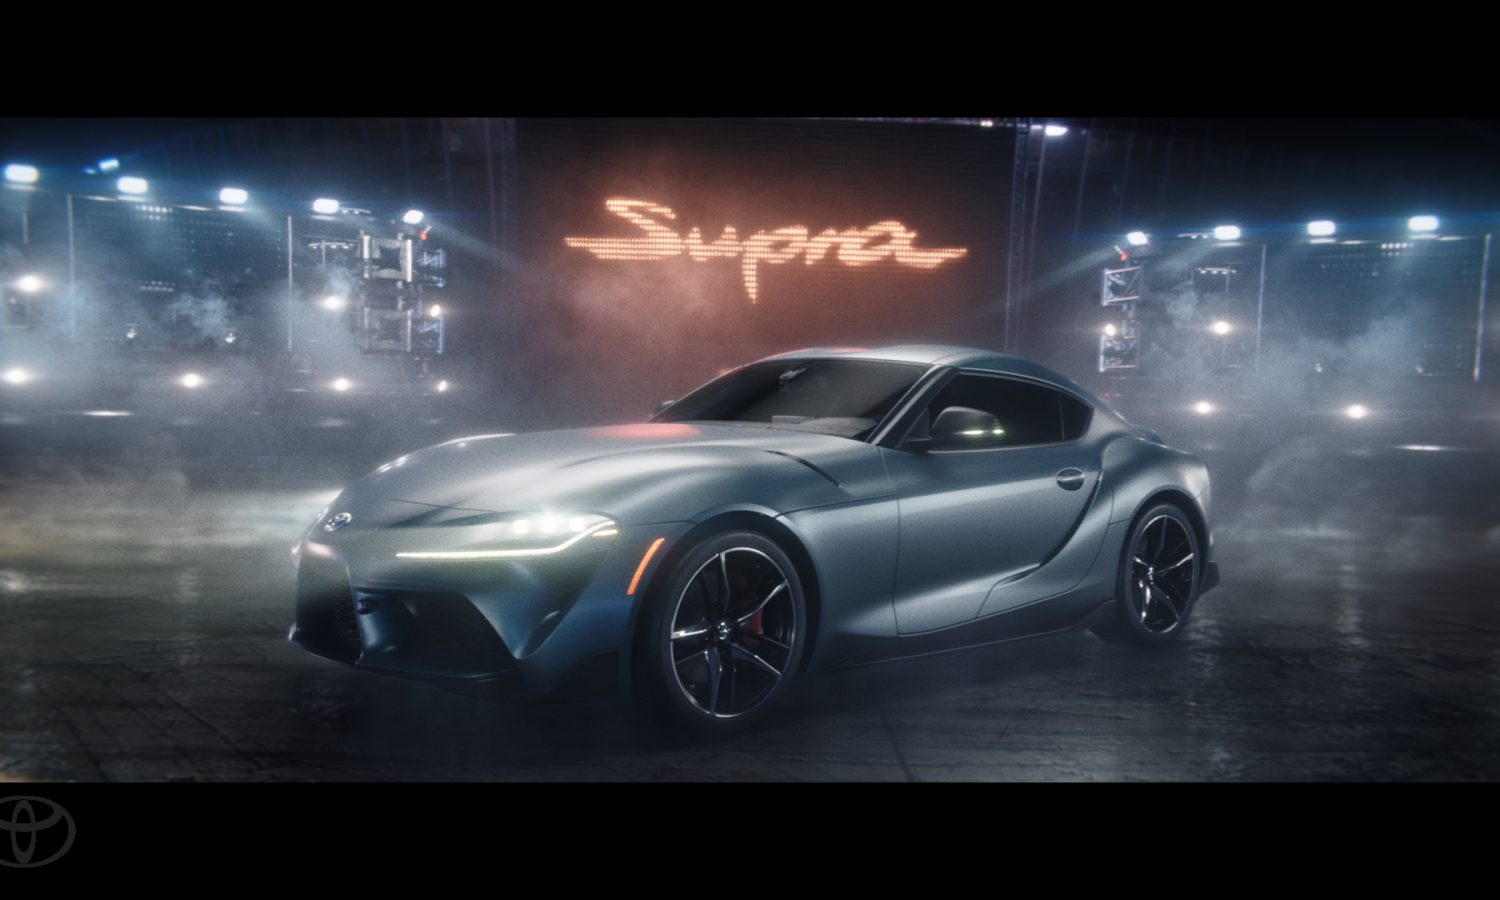 2020 Toyota Supra Gets Into the Big Game With Commercial Debut 1500x900